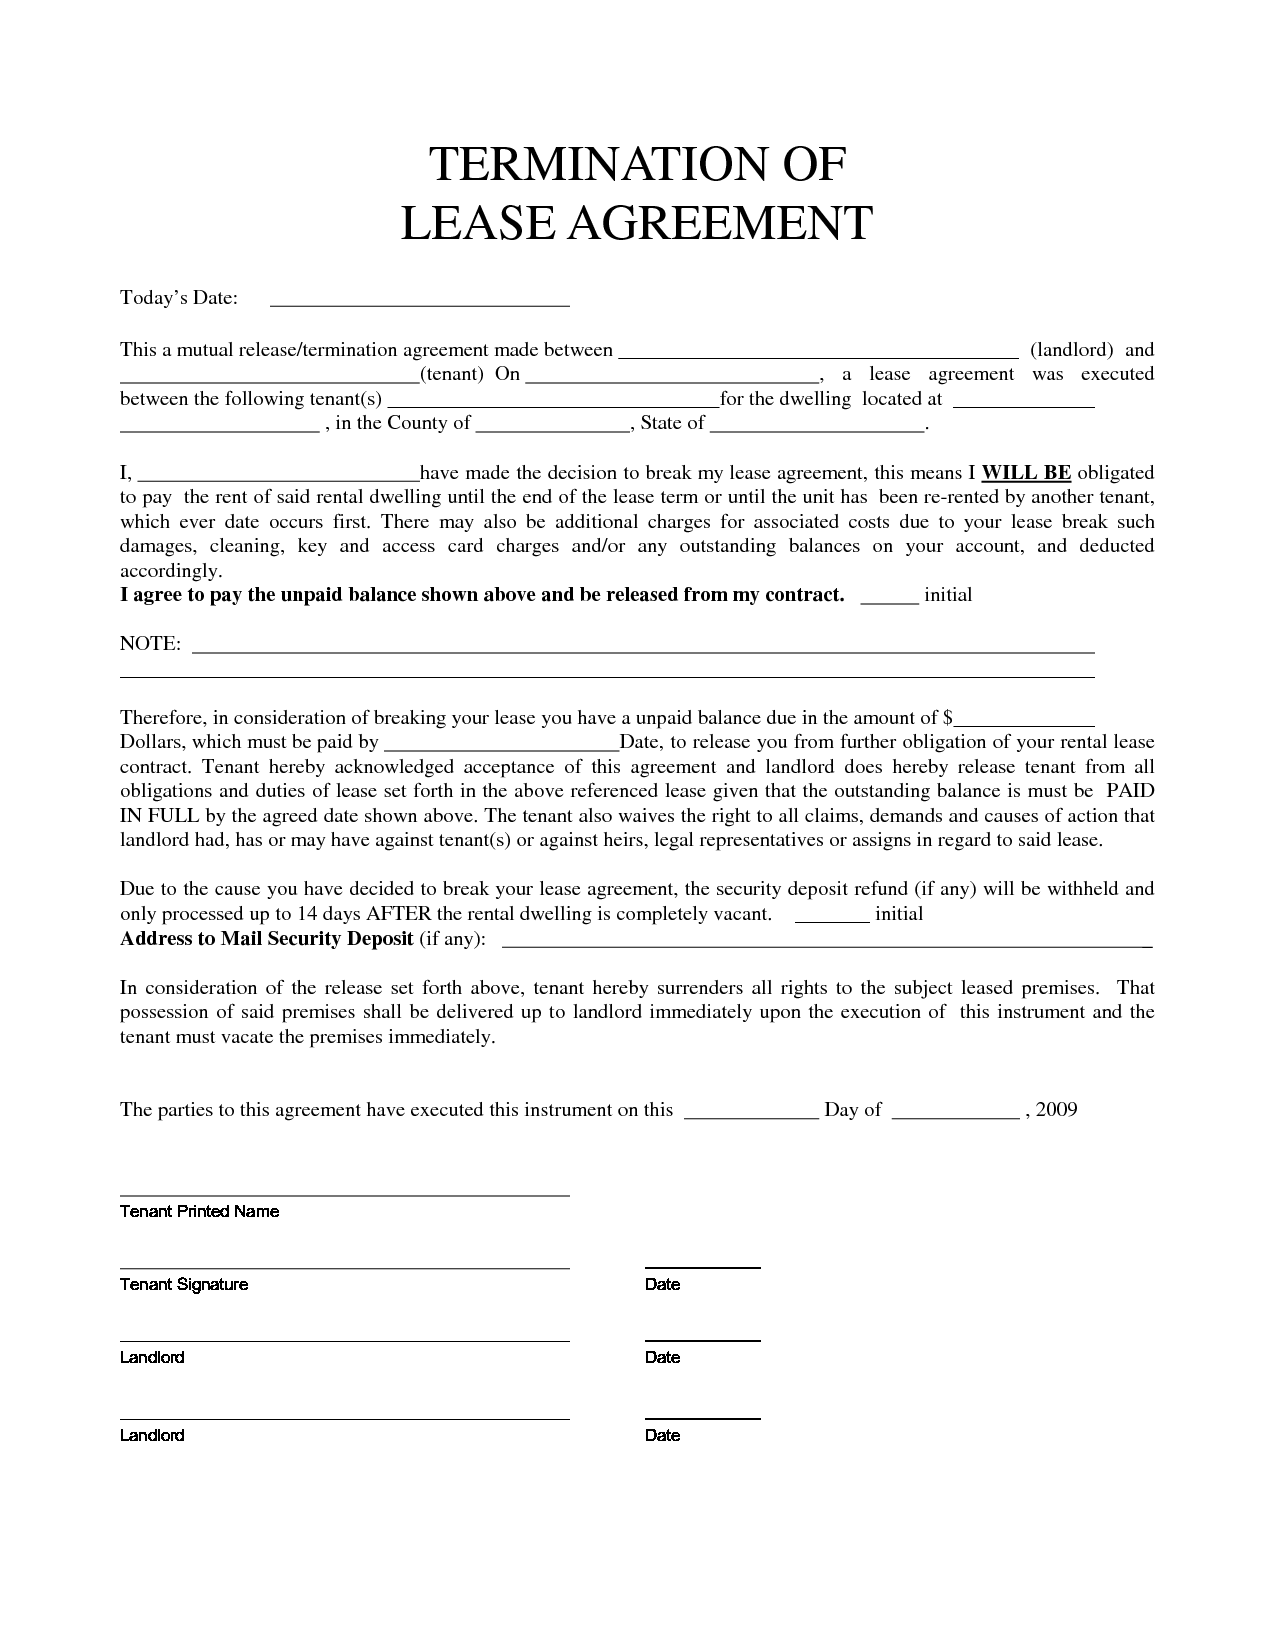 Personal Property Rental Agreement Forms Property Rentals Direct